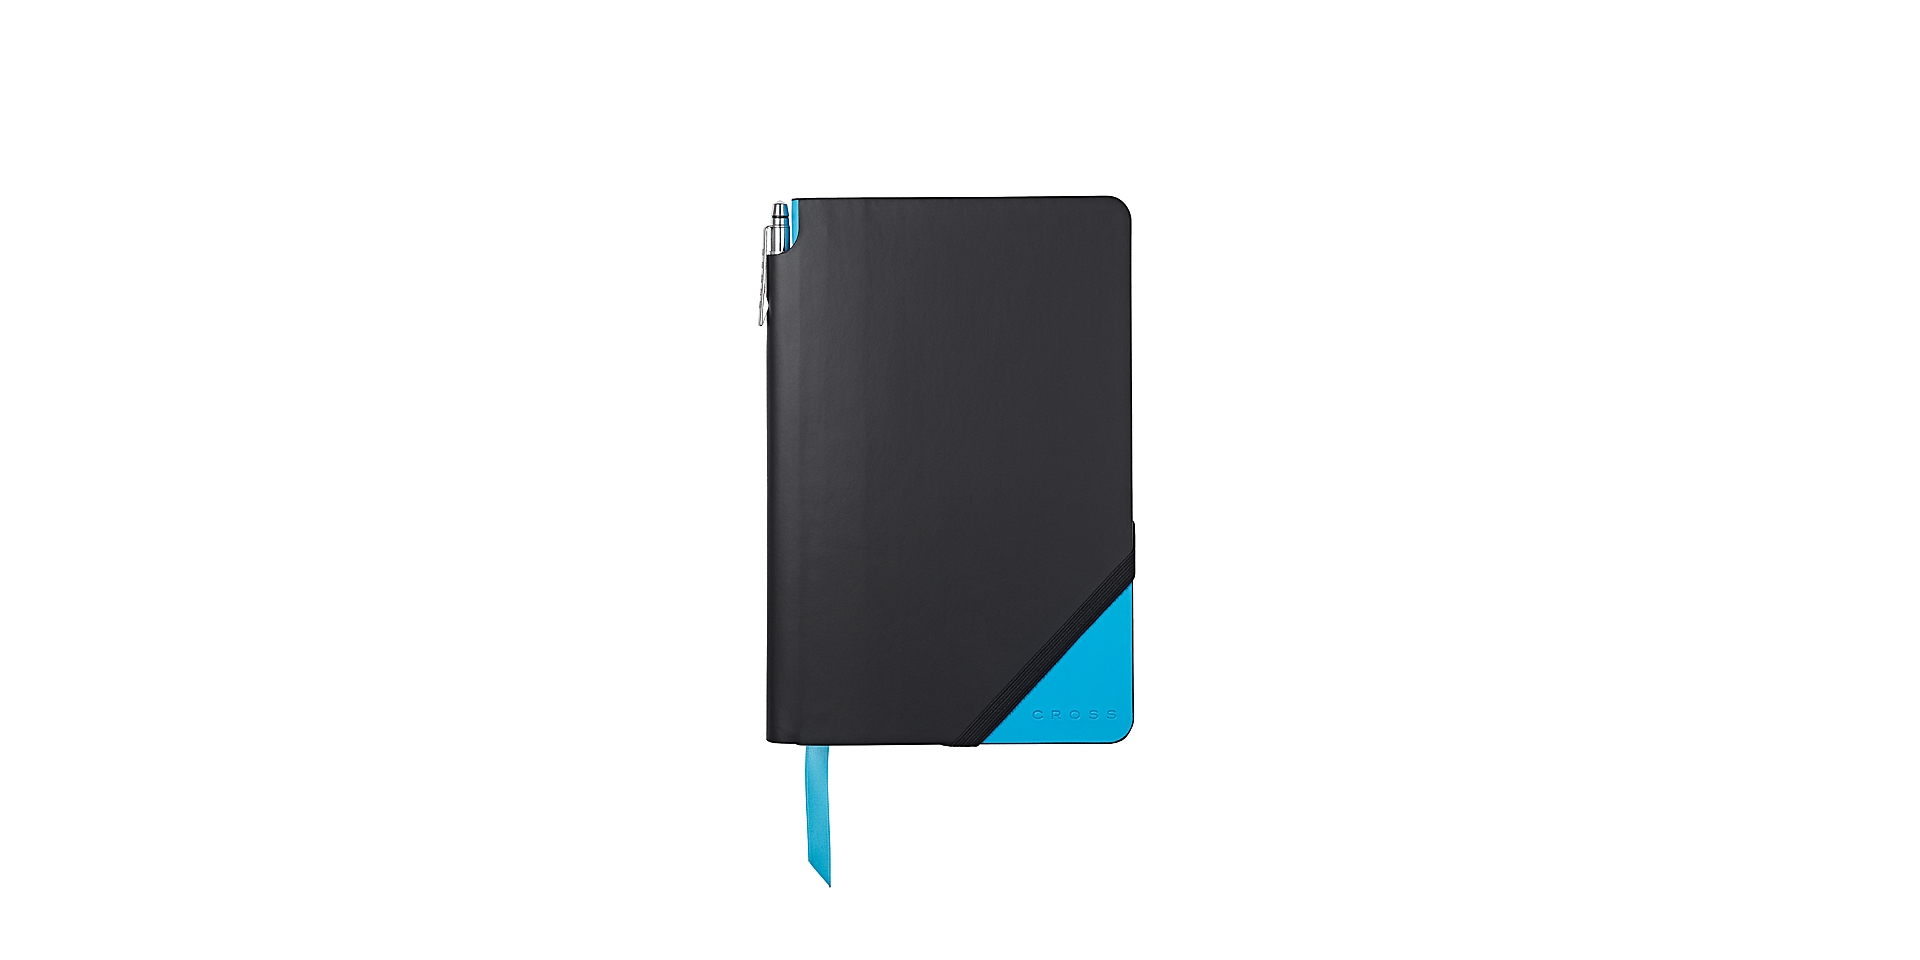 Cross Black & Bright Blue Medium Jotzone with Pen - Graph Paper Picture